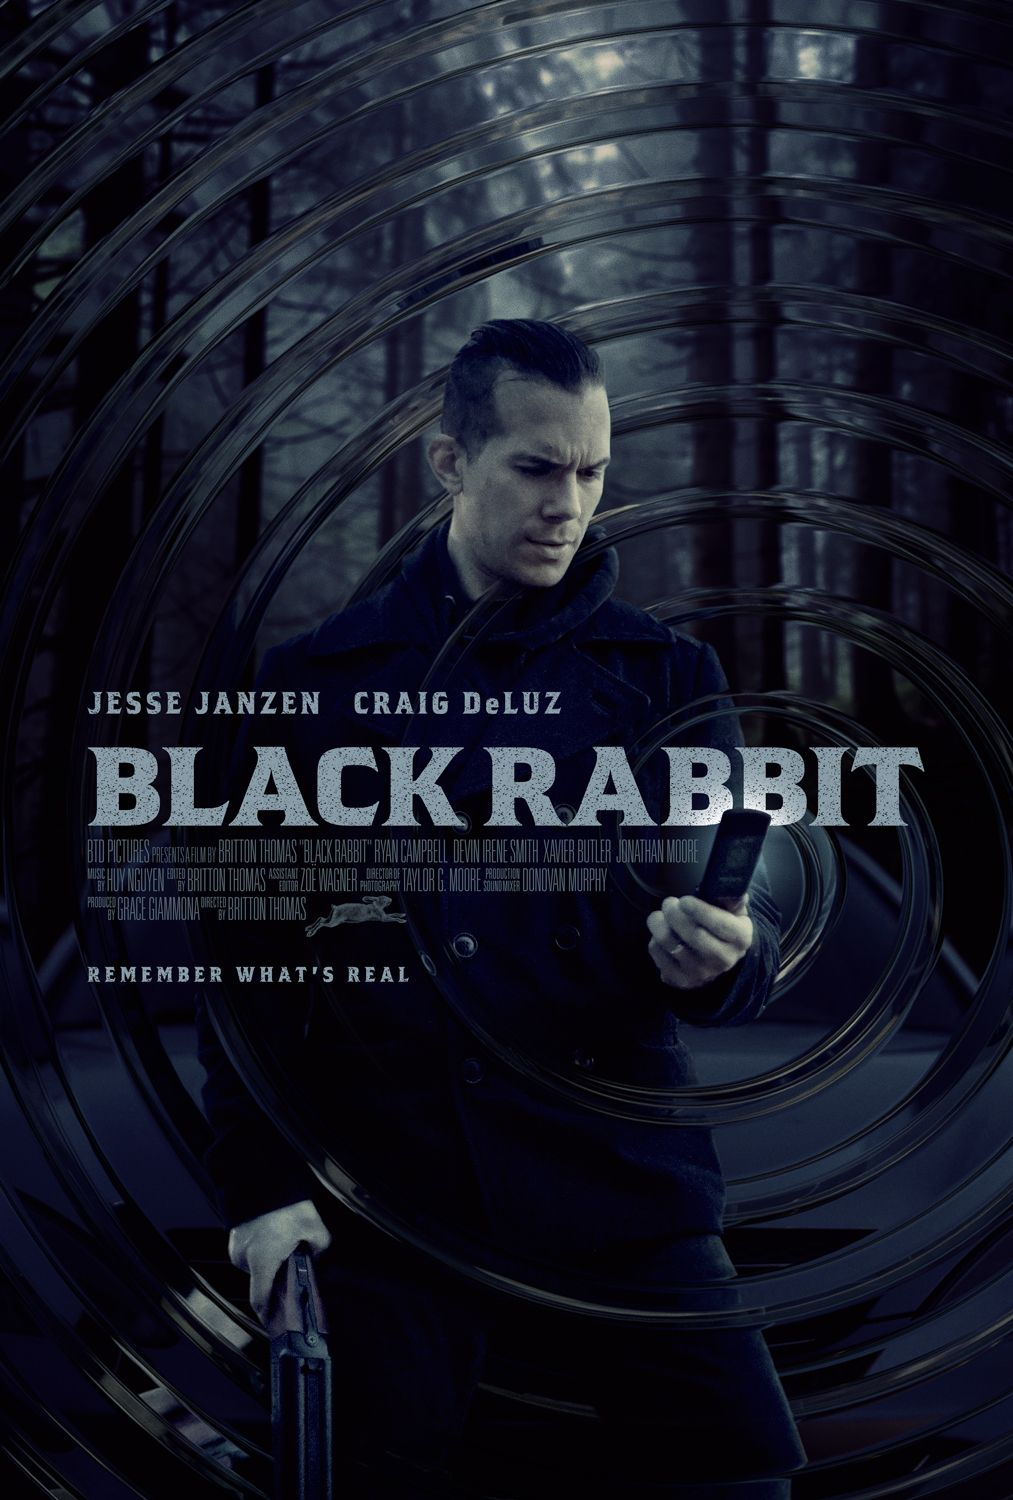 Black Rabbit Movie Poster By Www Keyart Ca Graphicdesign Design